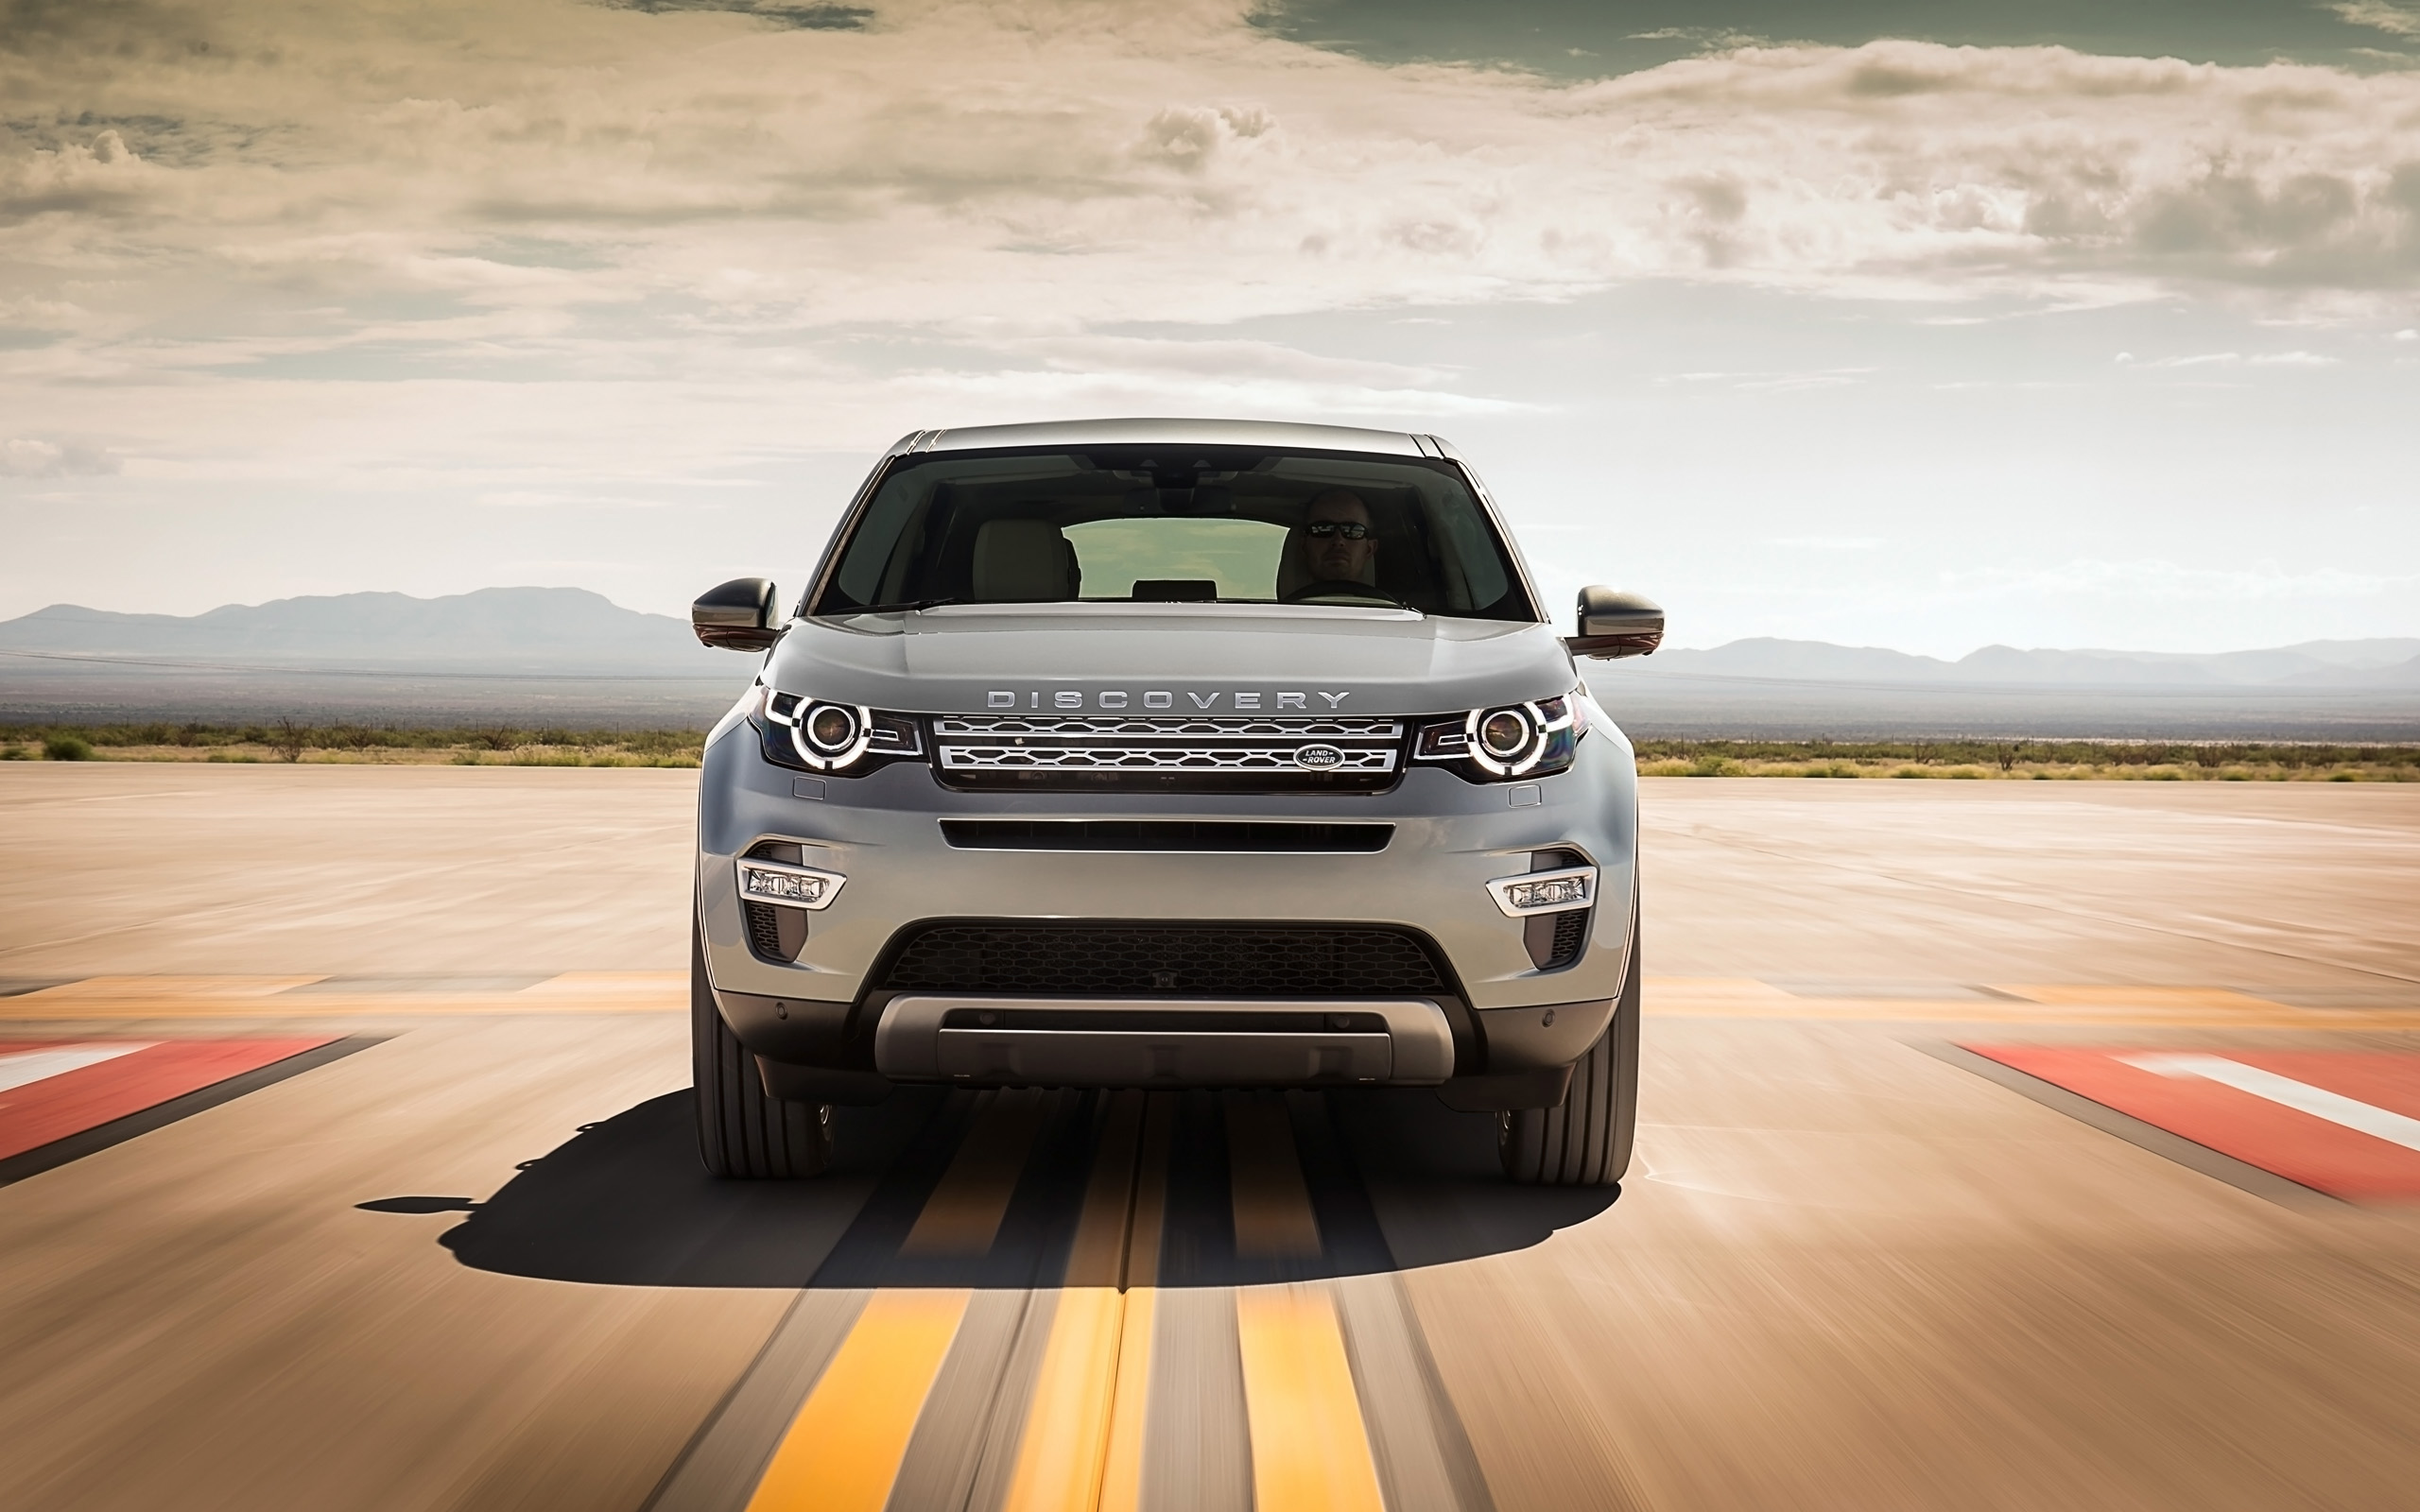 Wallpaper Land Rover Discovery Sport: 2015 Land Rover Discovery Sport Spaceport Front Wallpapers